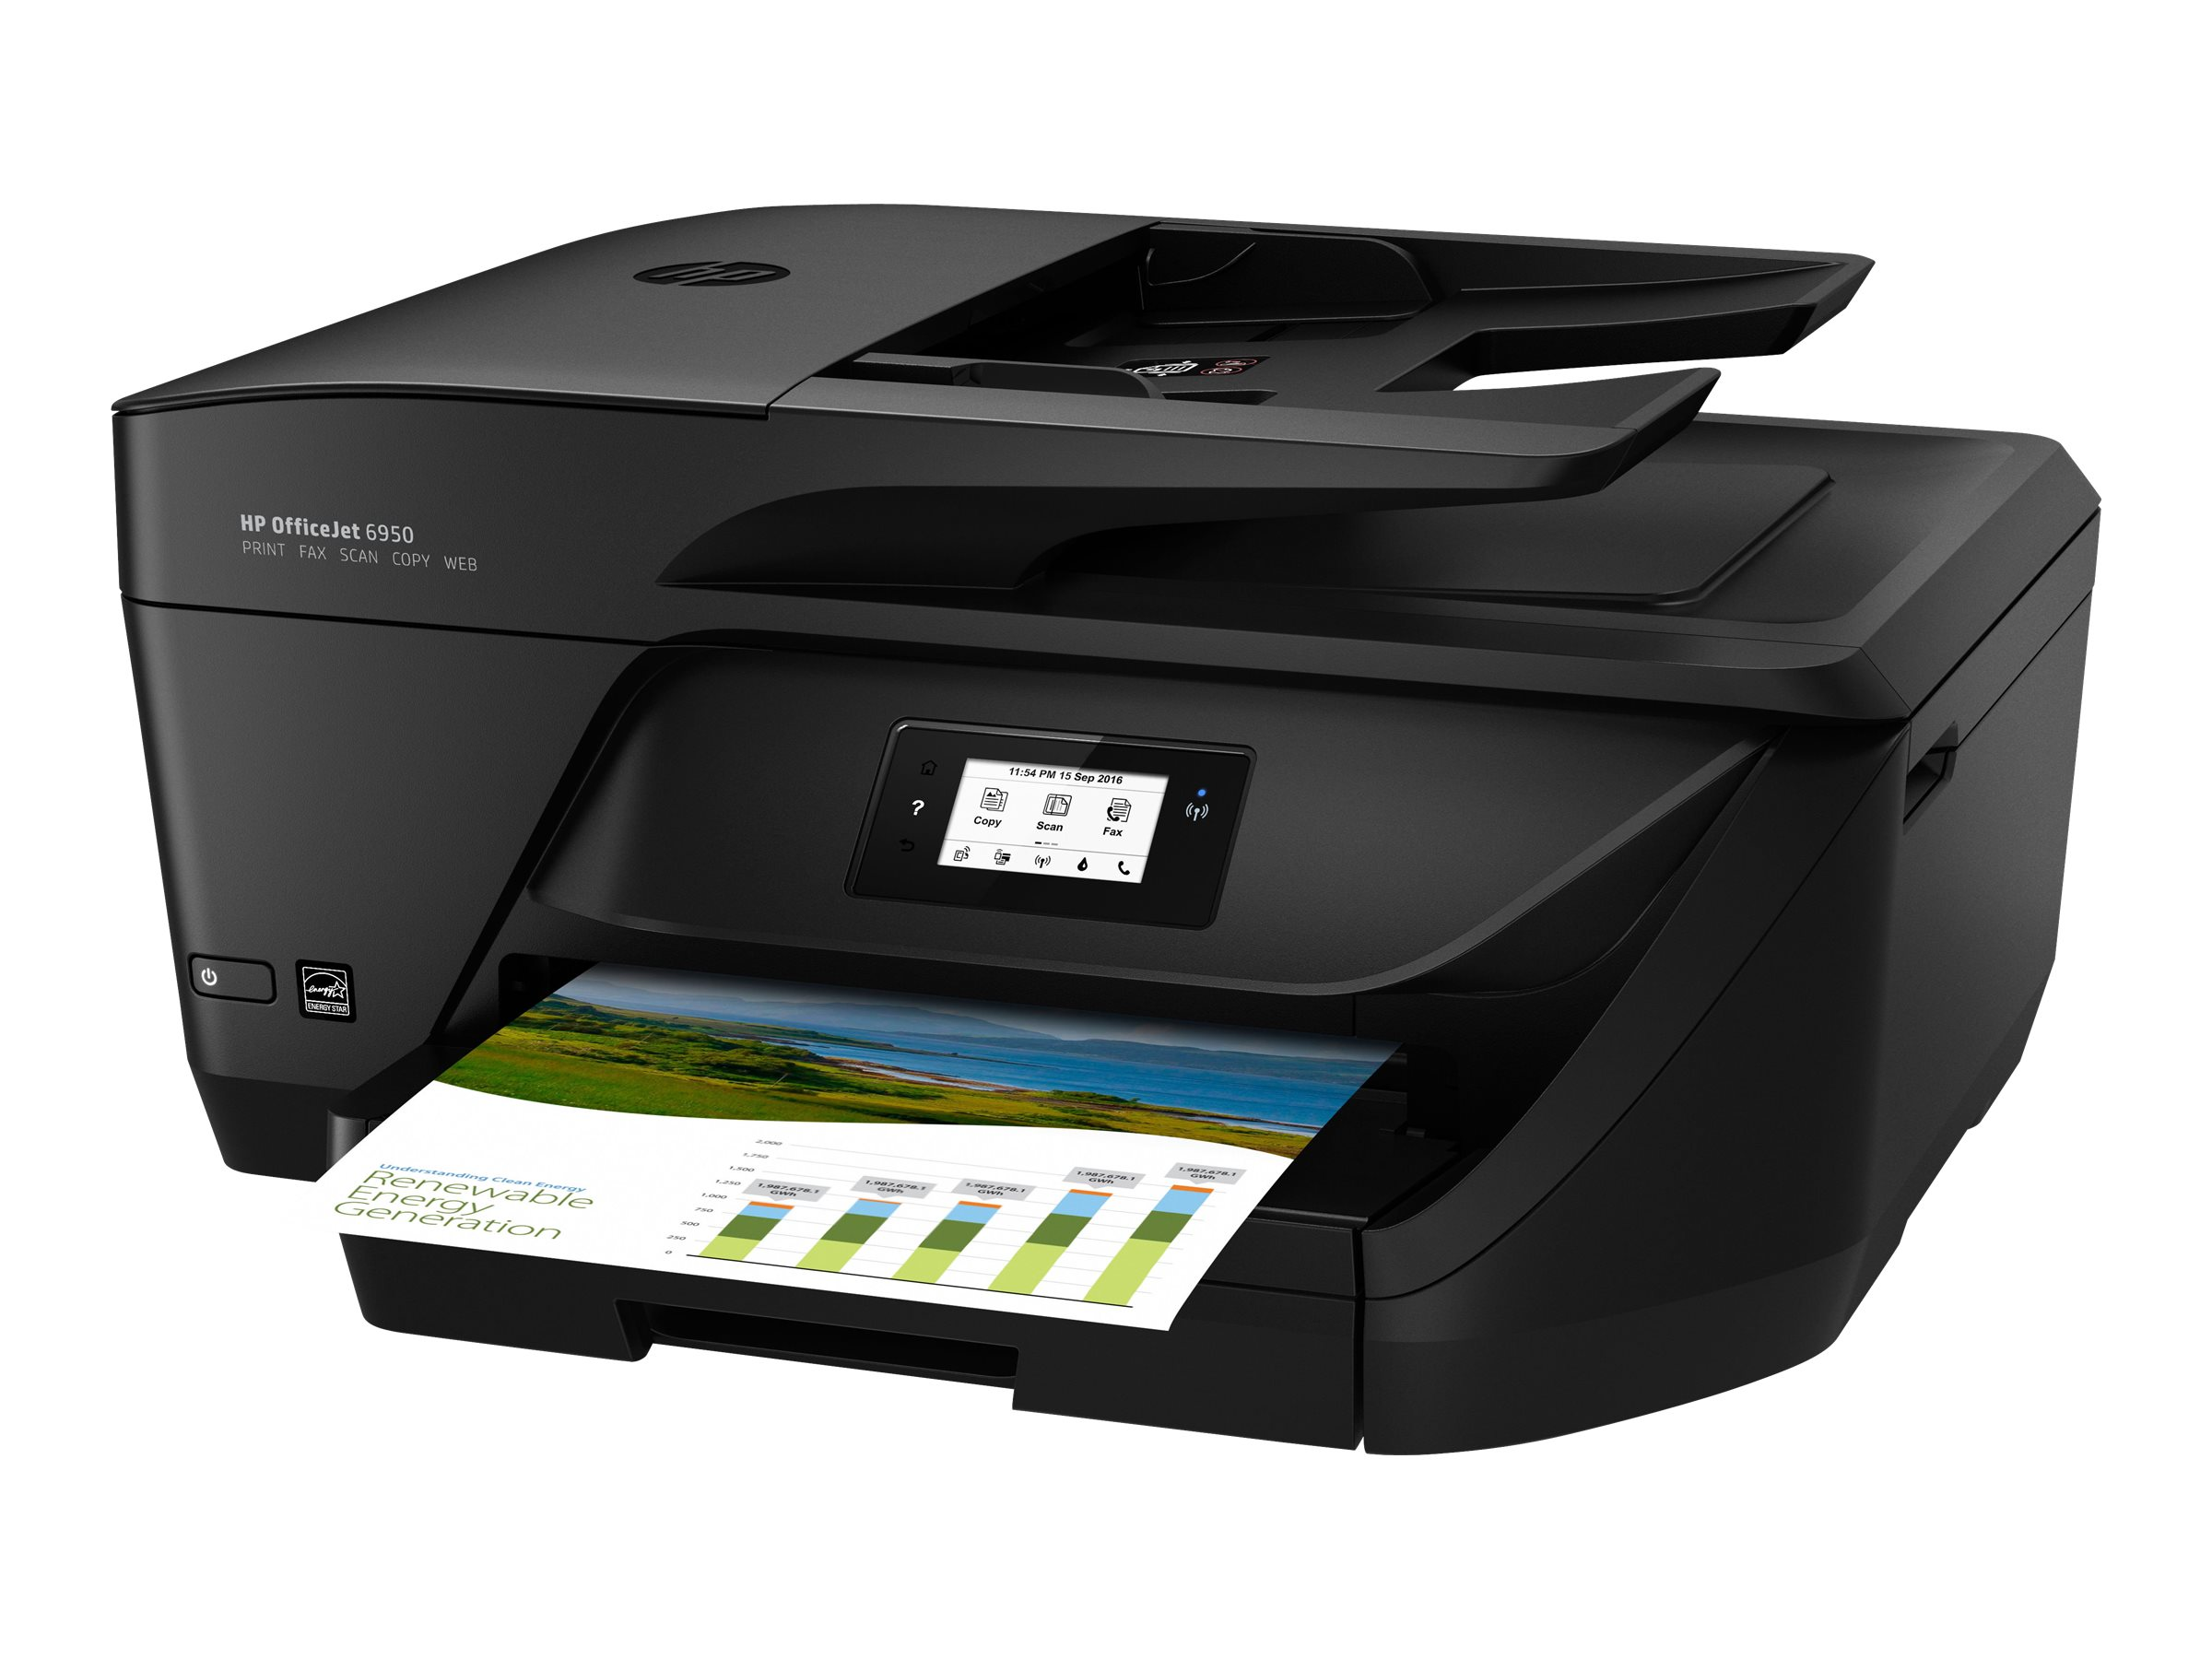 HP Officejet 6950 All-in-One - Multifunktionsdrucker - Farbe - Tintenstrahl - Legal (216 x 356 mm)/